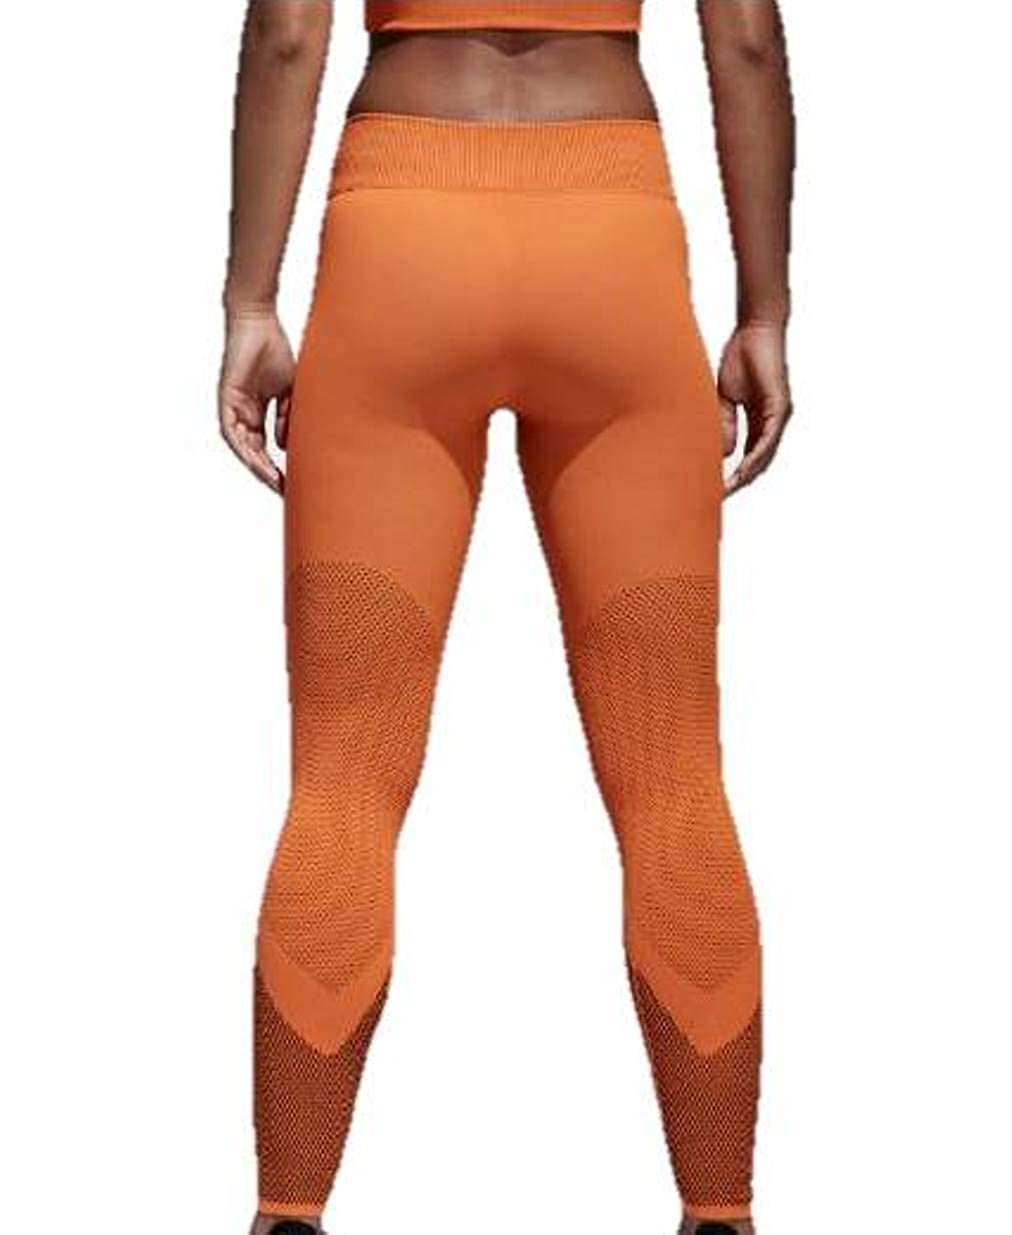 467265a0d8c84 adidas Women's CD3120 Warp Knit Tights at Amazon Women's Clothing store: